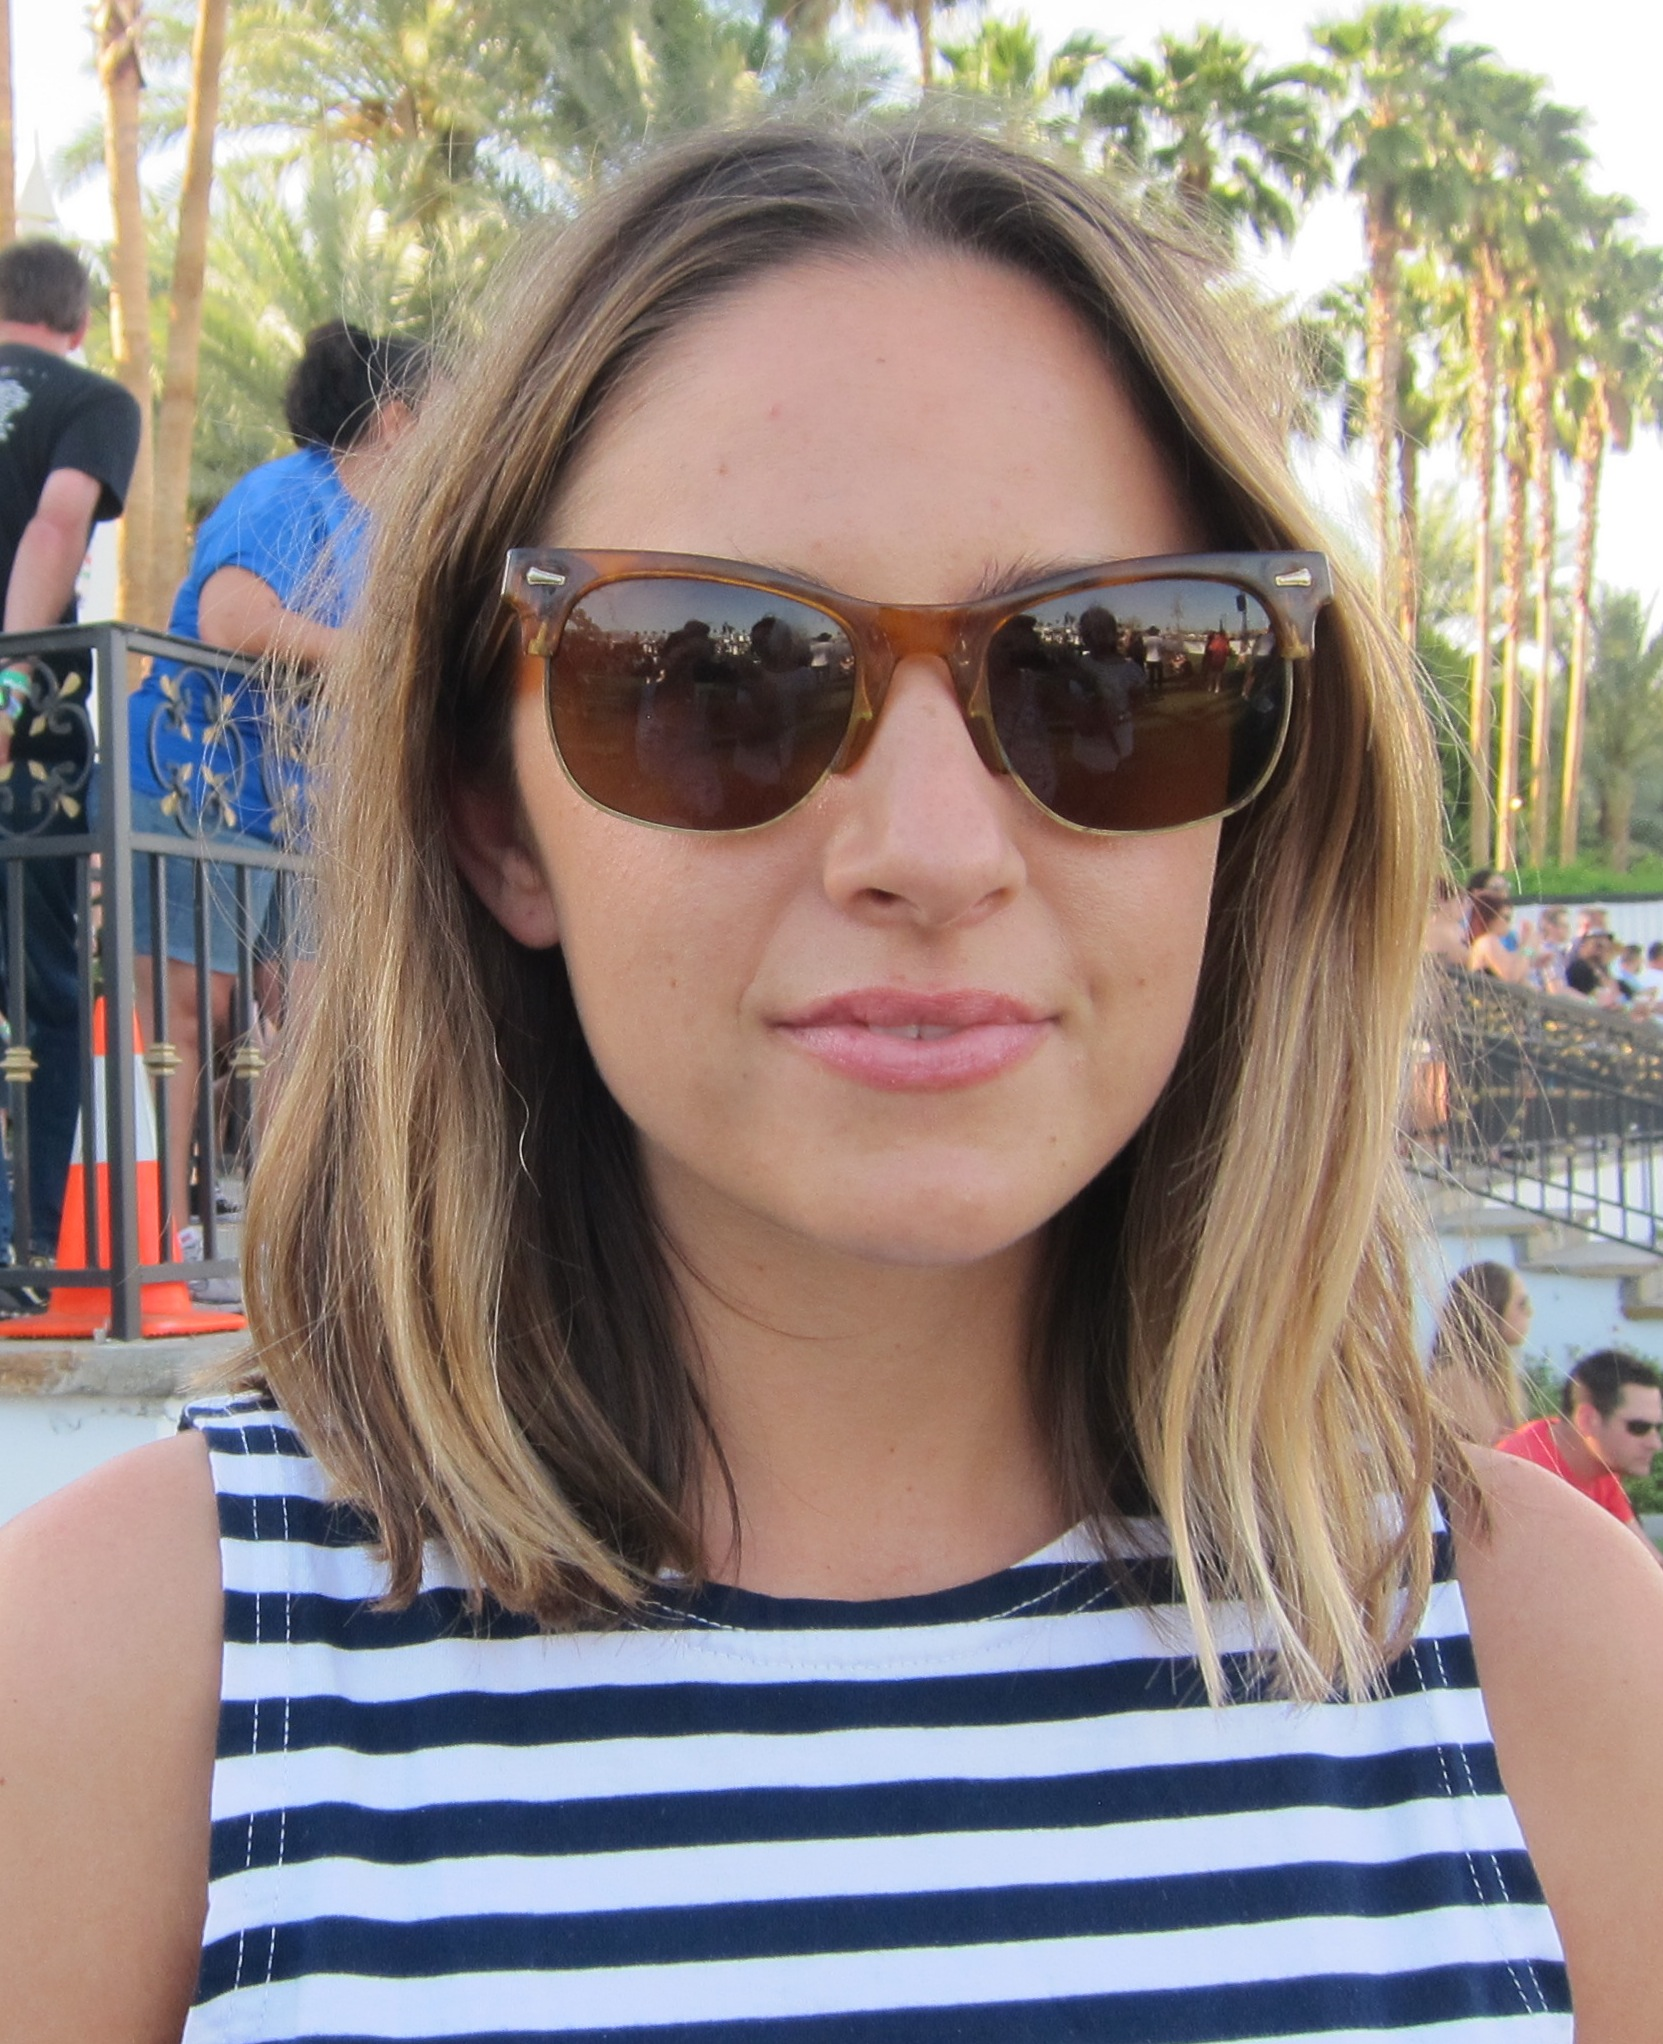 The lob lives on at Coachella. Photo: Meg Cu